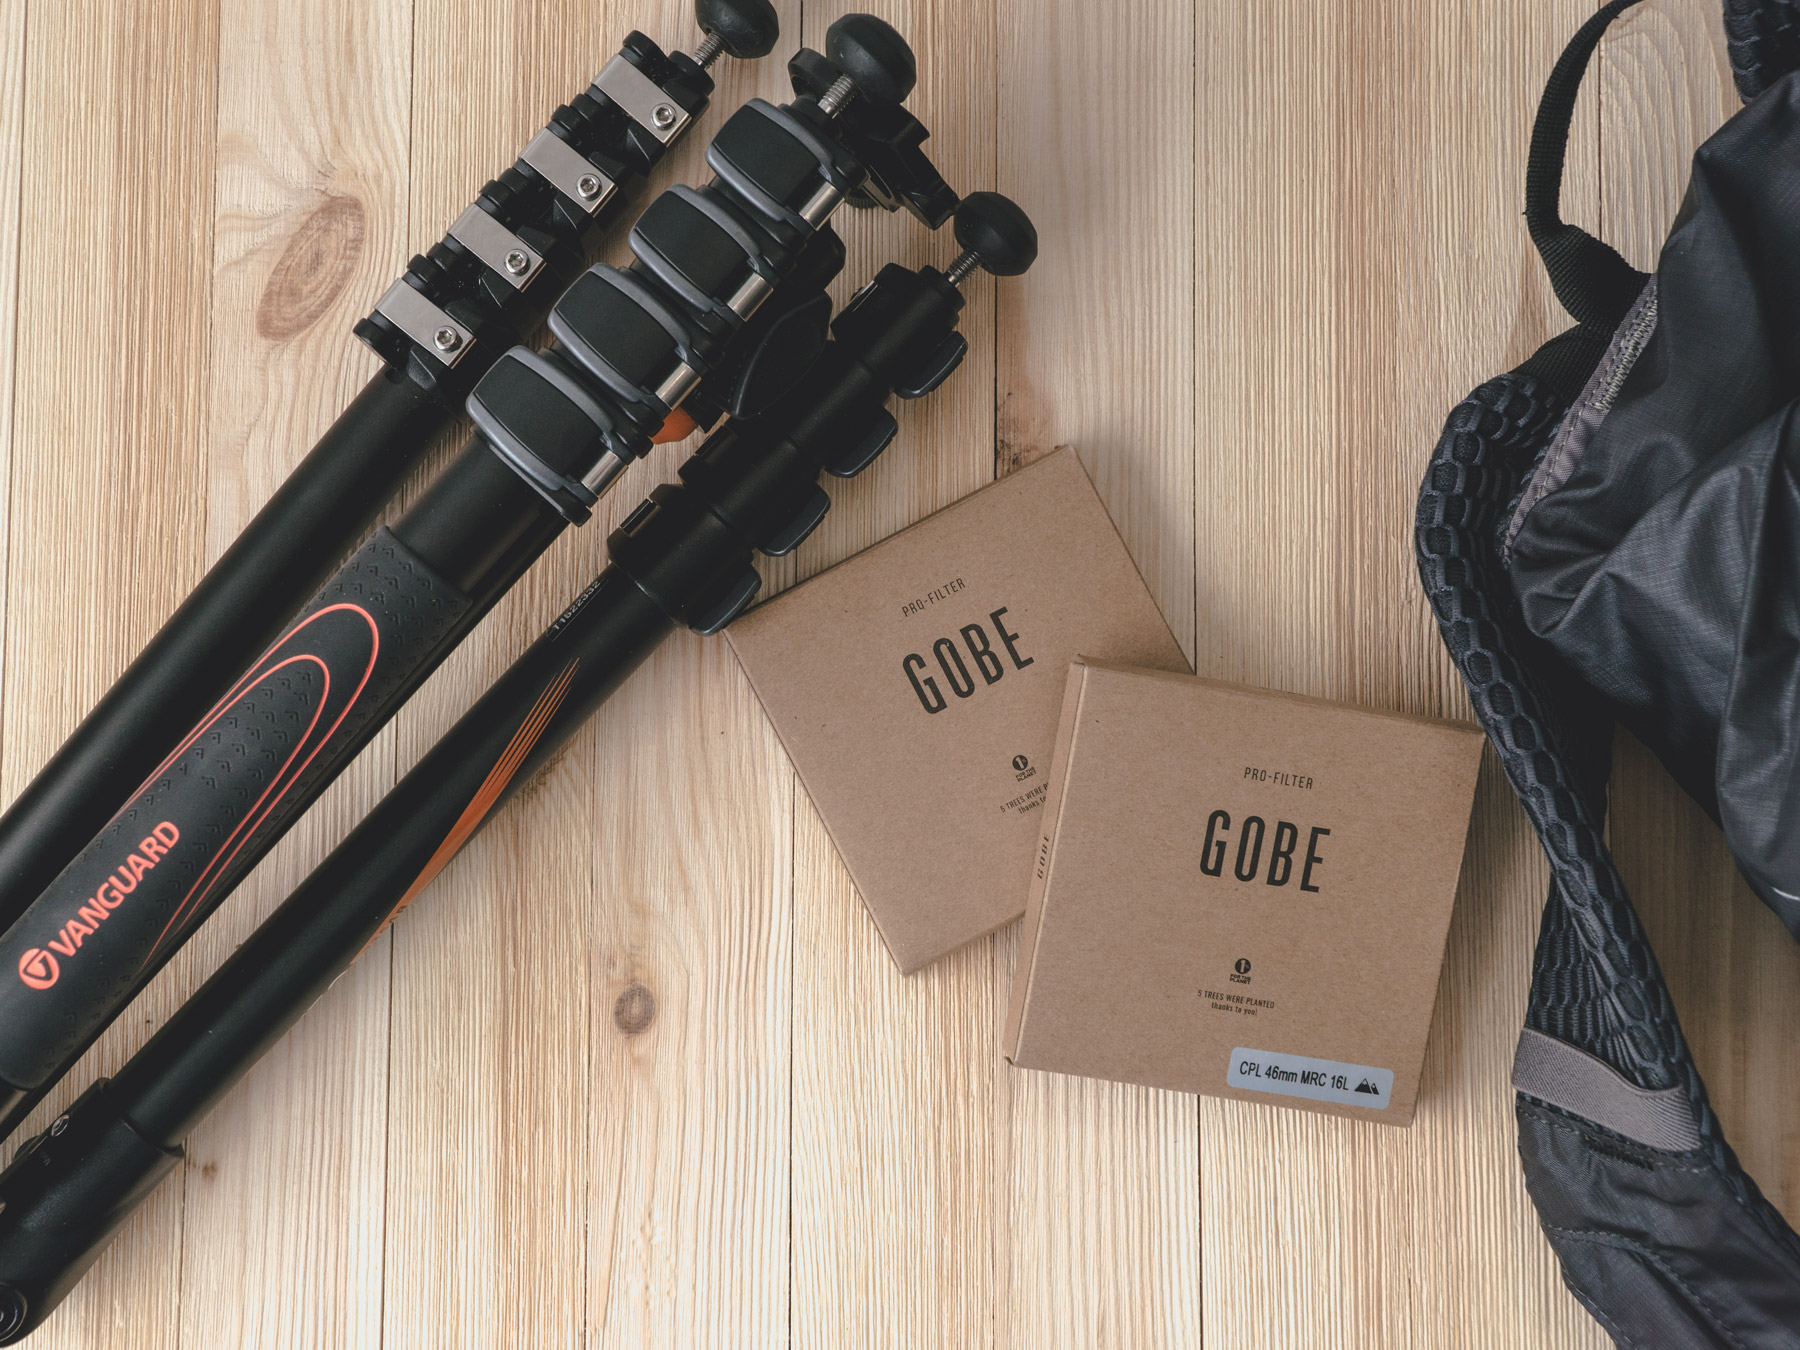 Gobe Filters Review